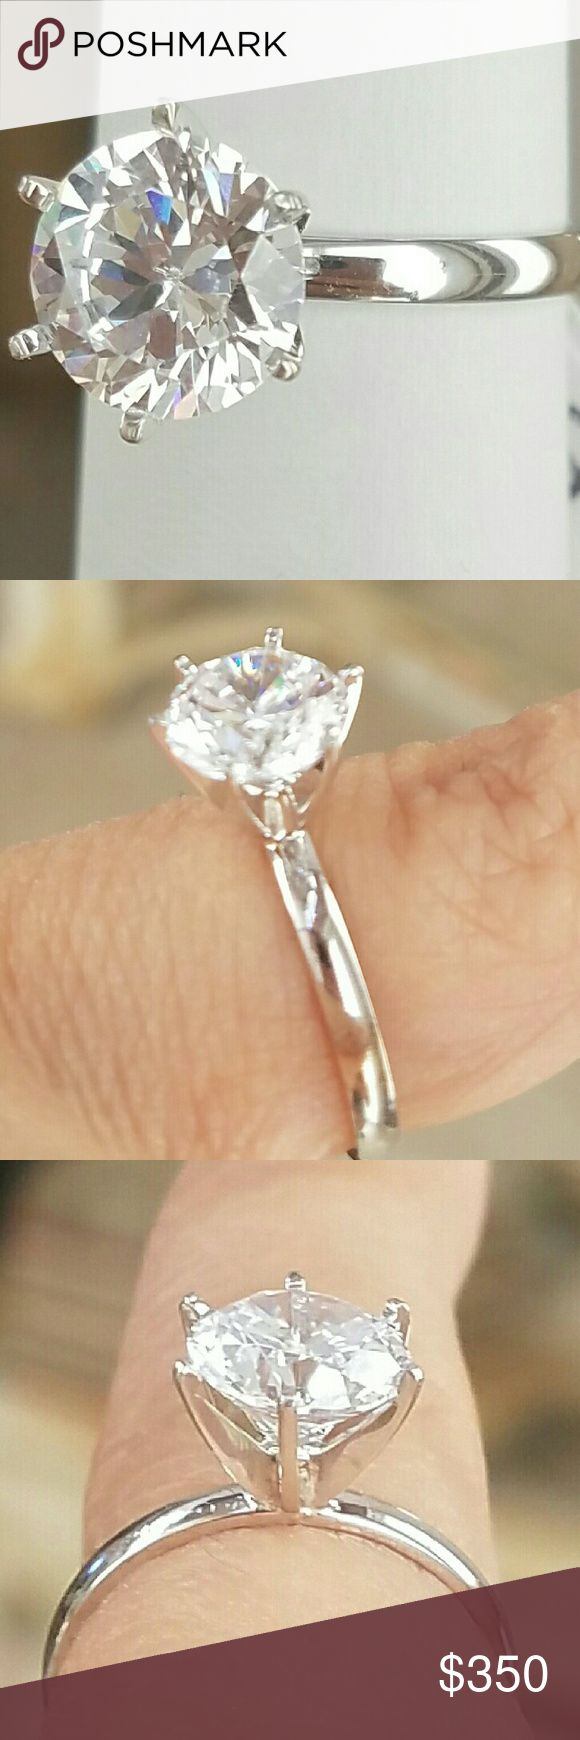 2 karat Solitaire 14k white gold Engagement ring This is a 2ct simulated man made diamond Solitaire Engagement Ring in 14K solid real white gold available in sizes 5 6 7 8 9 Jewelry Rings